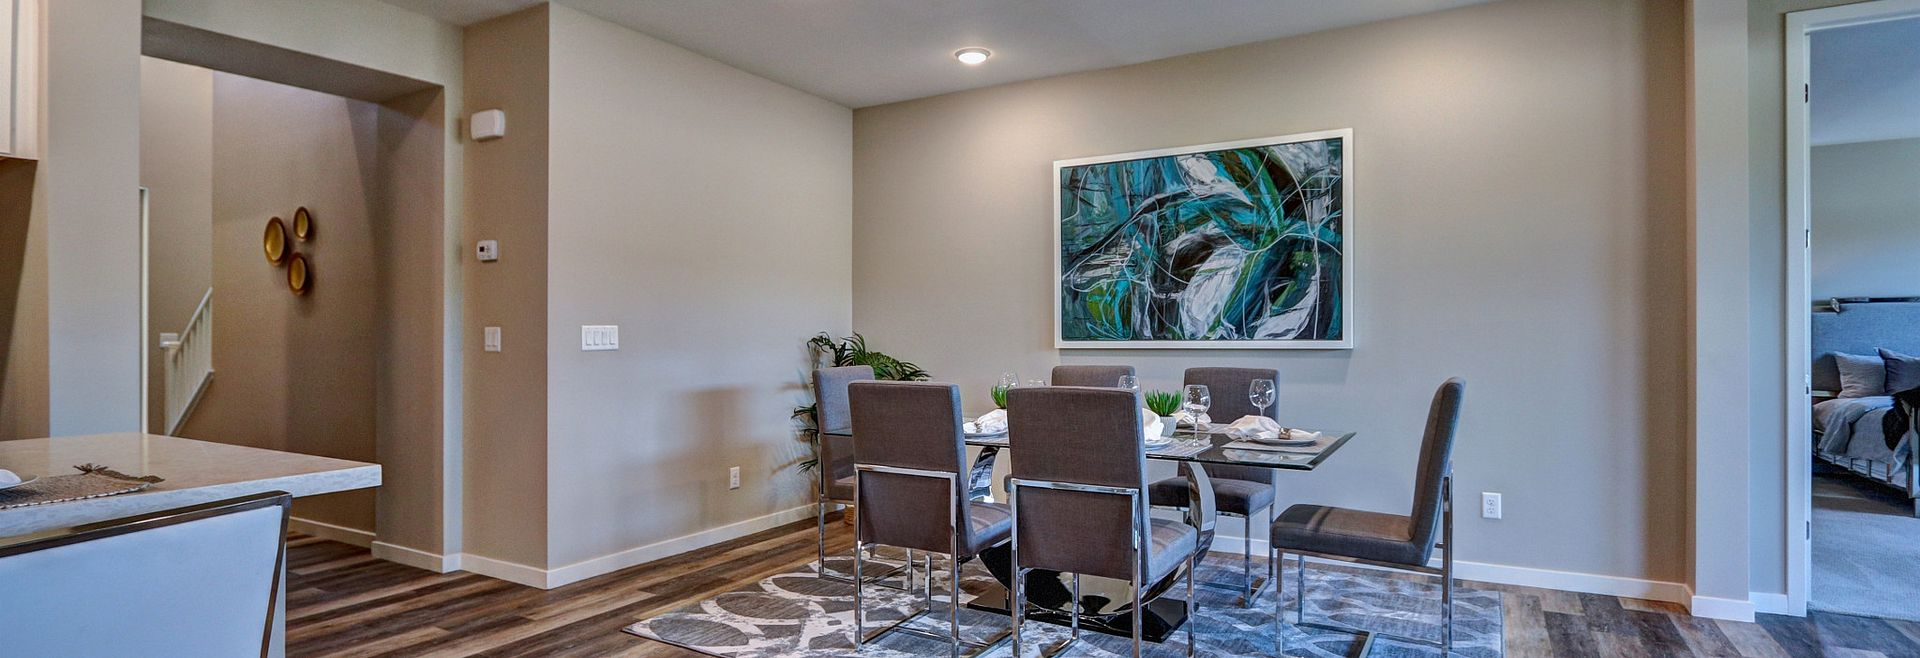 Trilogy Summerlin Reflect Dining Room